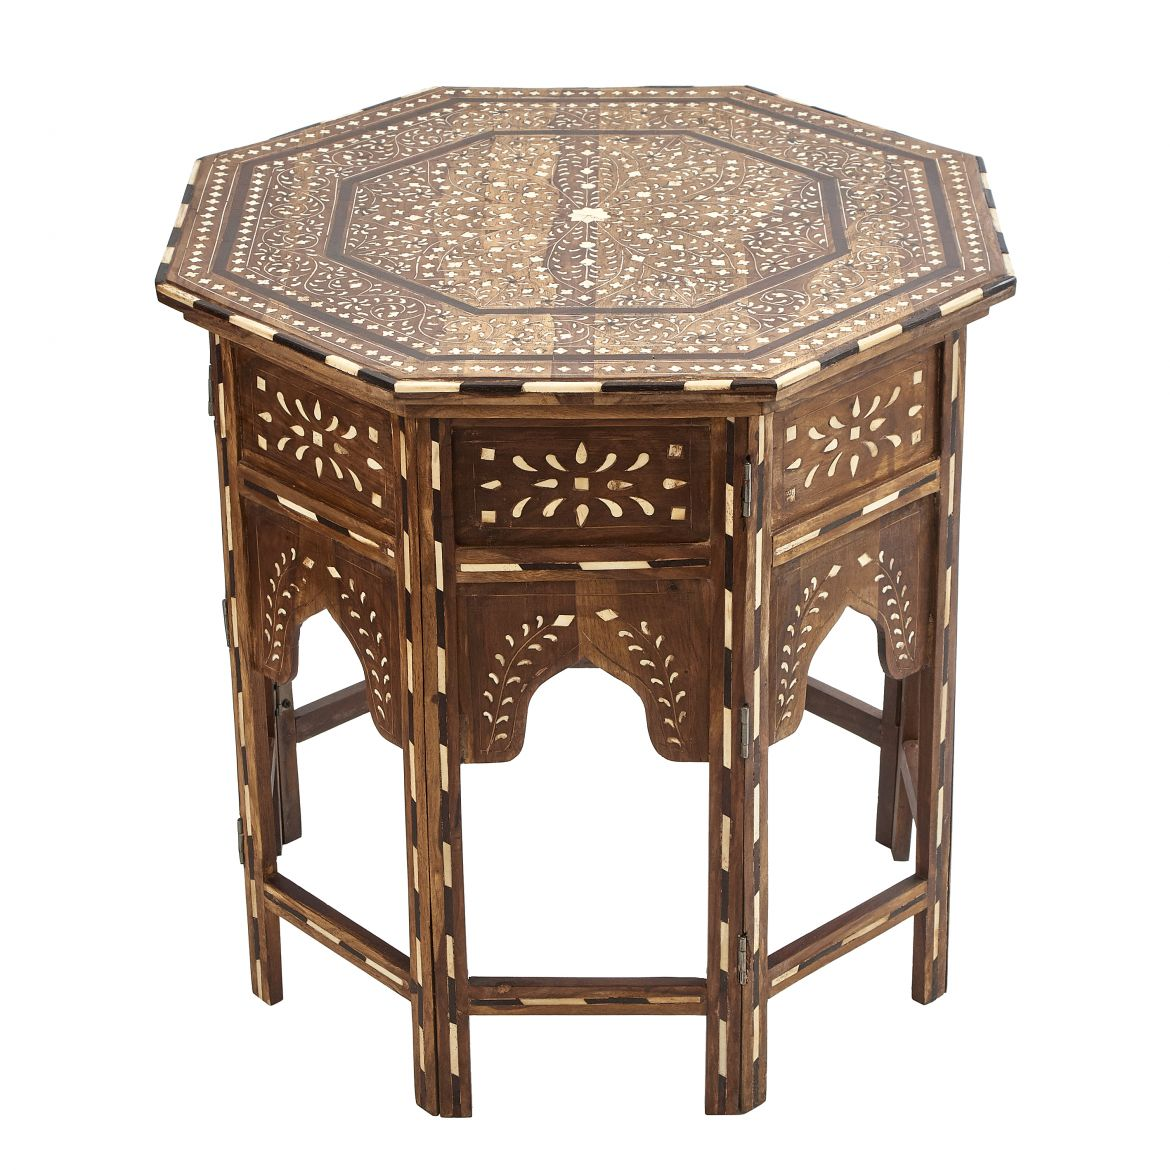 Octagonal Inlaid Table With Floral Design